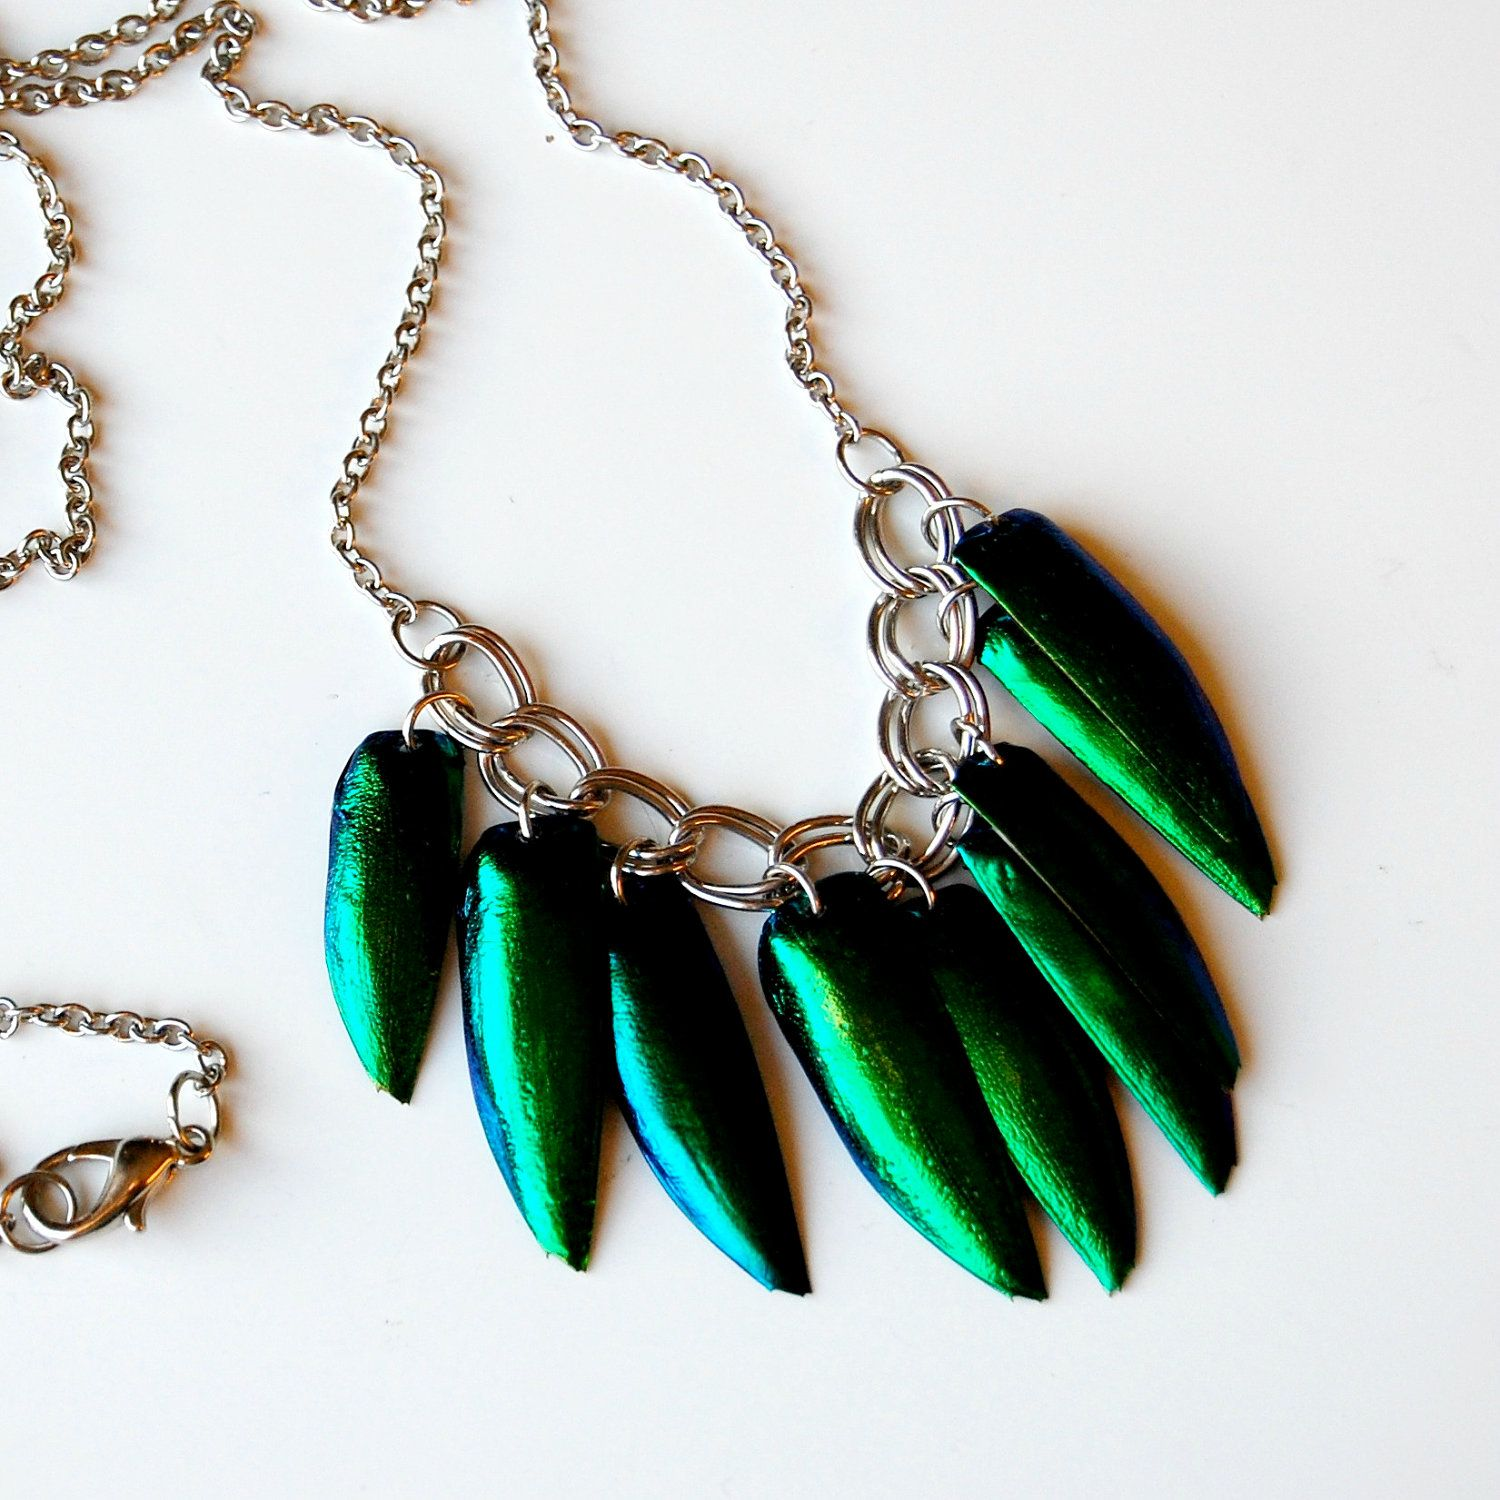 ELYCTRA metallic jewel beetle wing necklace in silver.